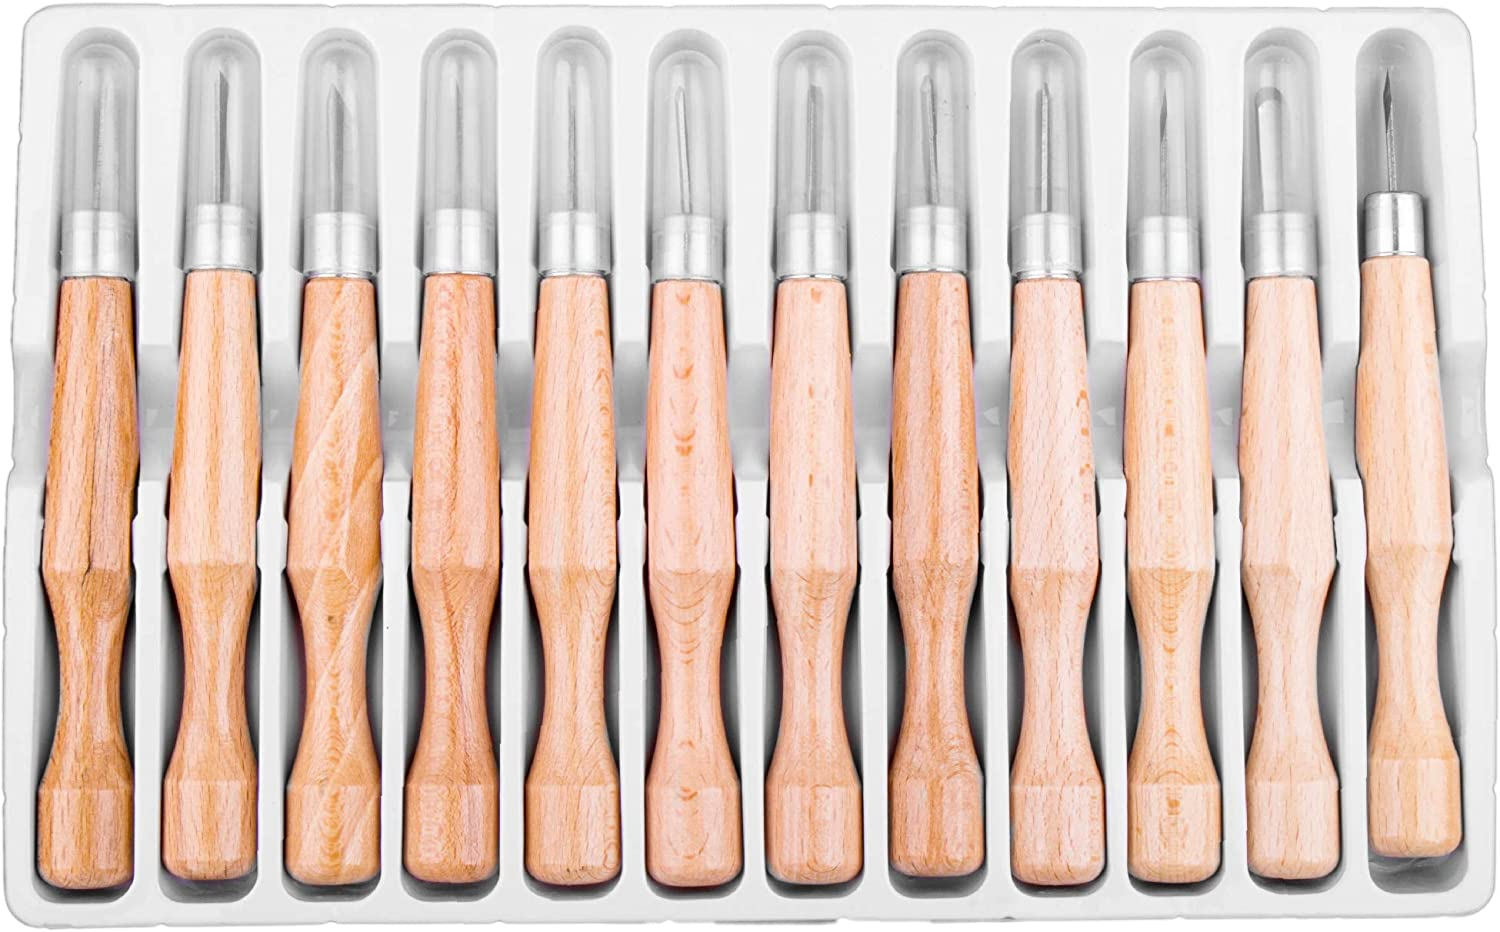 Hi-Spec 12 Piece Wood Carving & Crafting Set for Chip & Relief Carving, Whittling & Carving for DIY Craftwork & Hobbyists. Chisels, Angled Knives & Gouges with Beechwood Handles